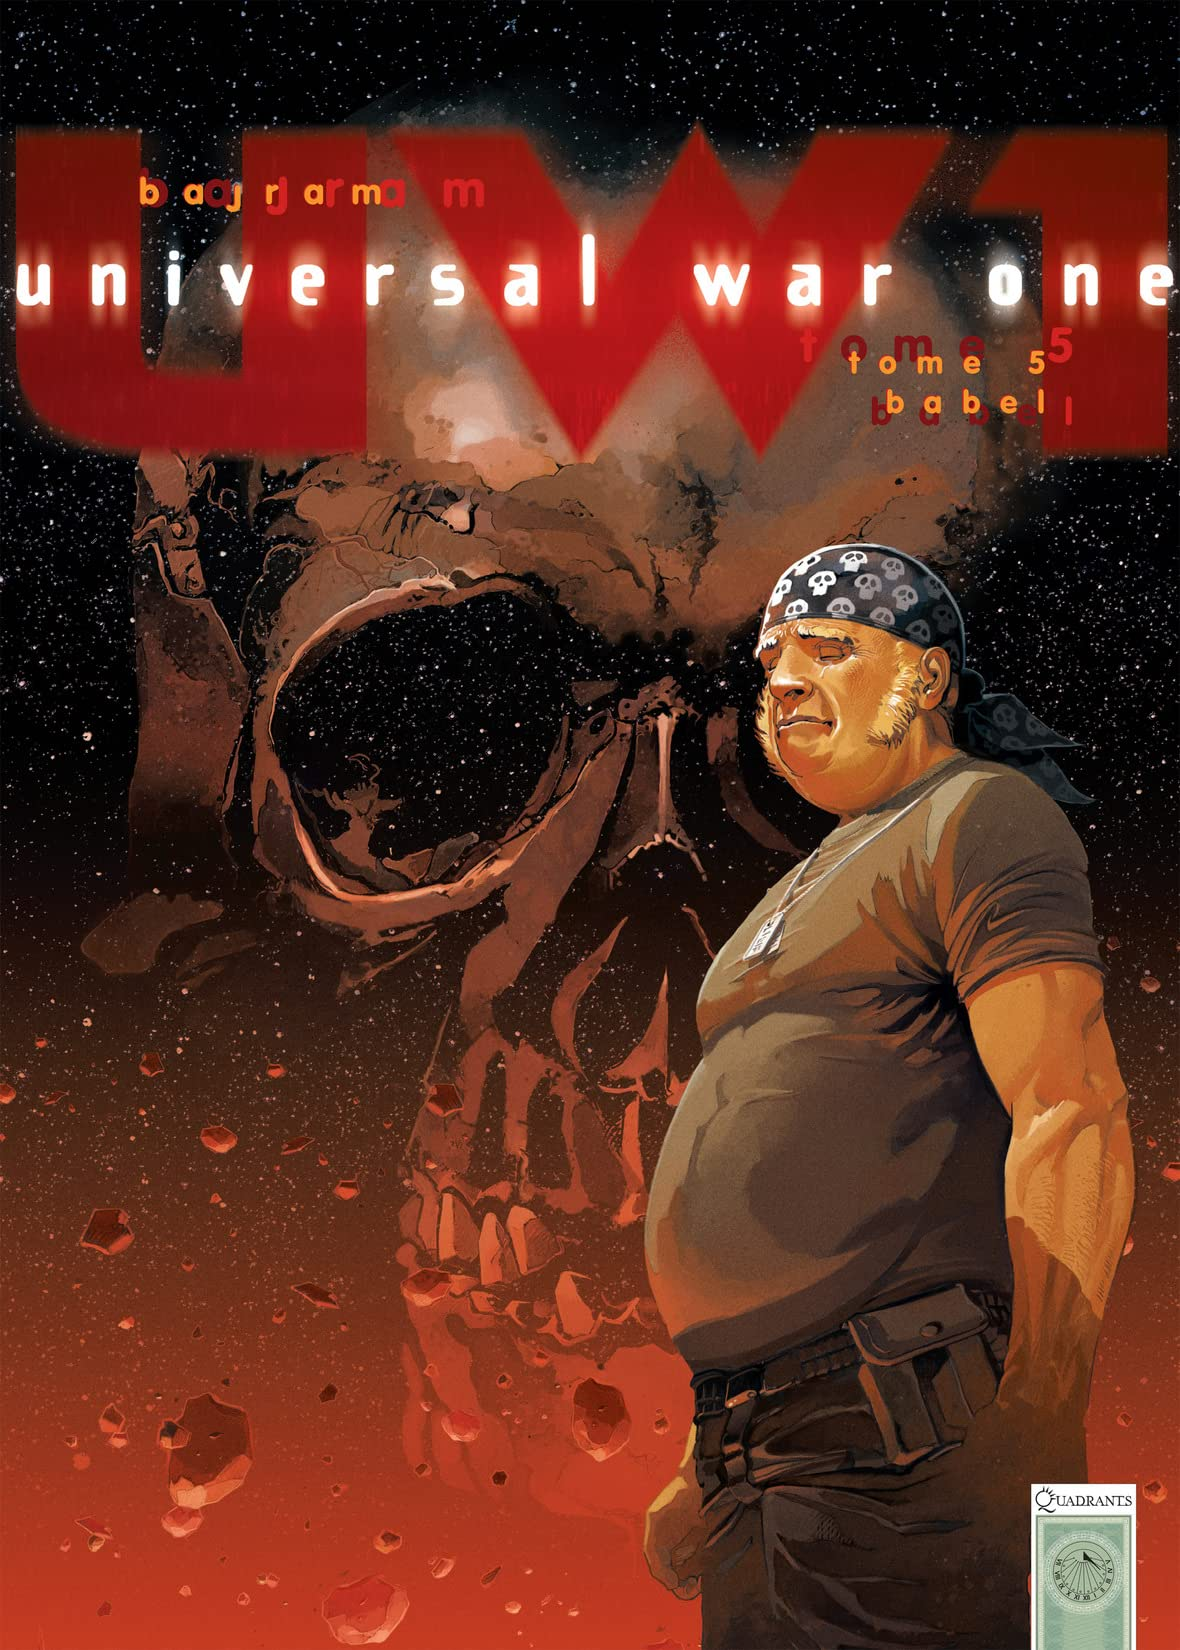 Universal War One Vol. 5: Babel